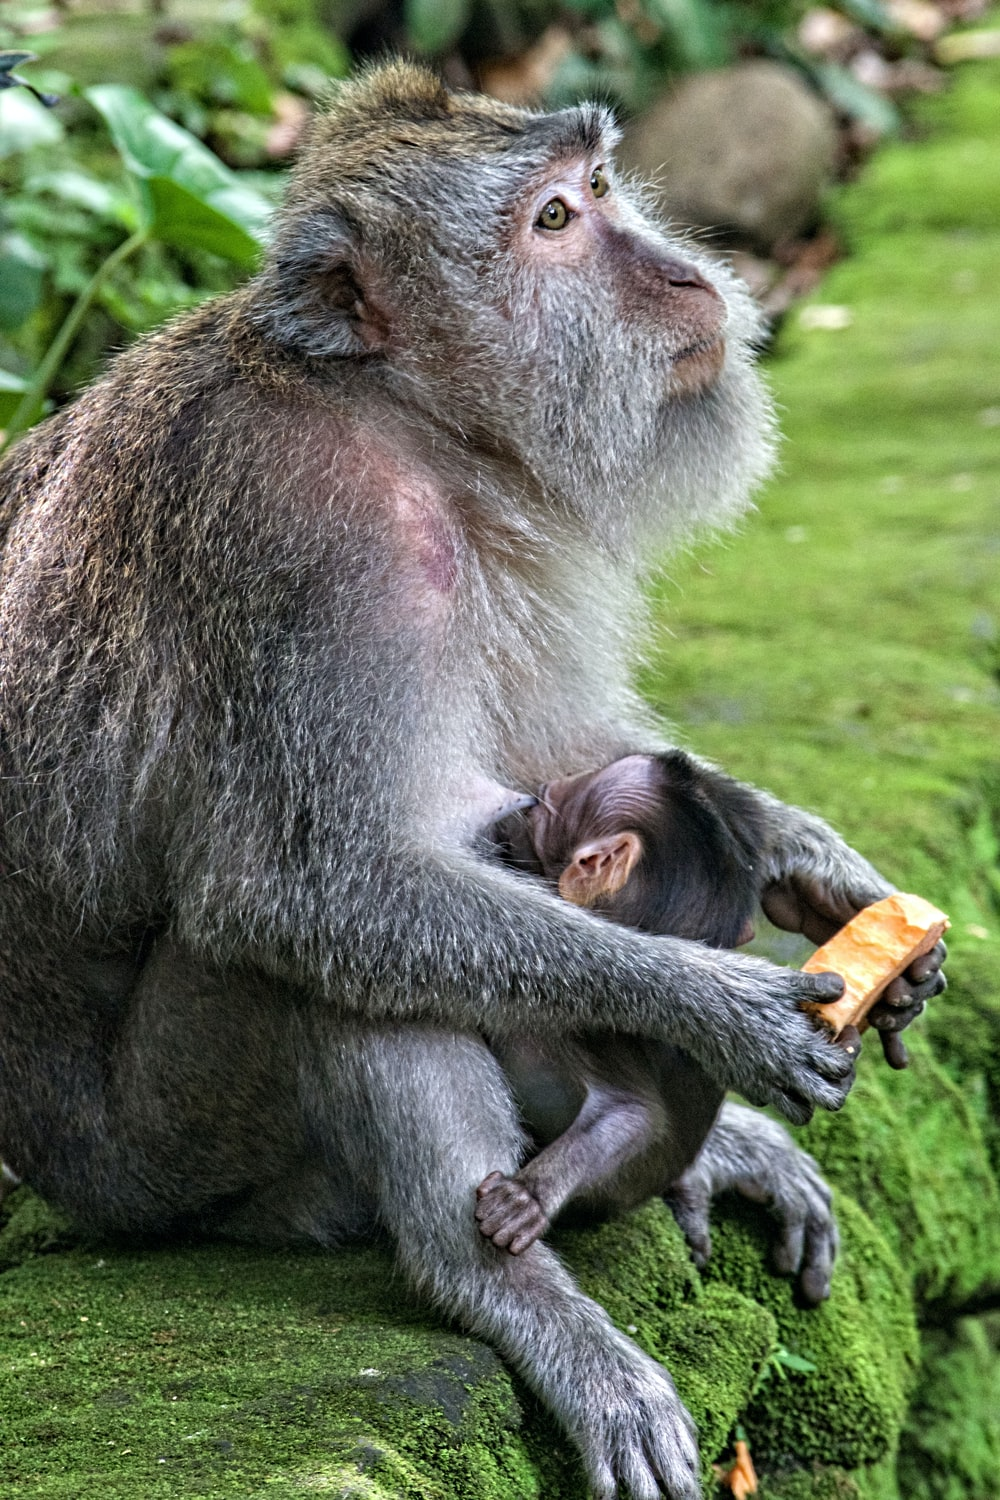 chimpanzee breastfeeding her young